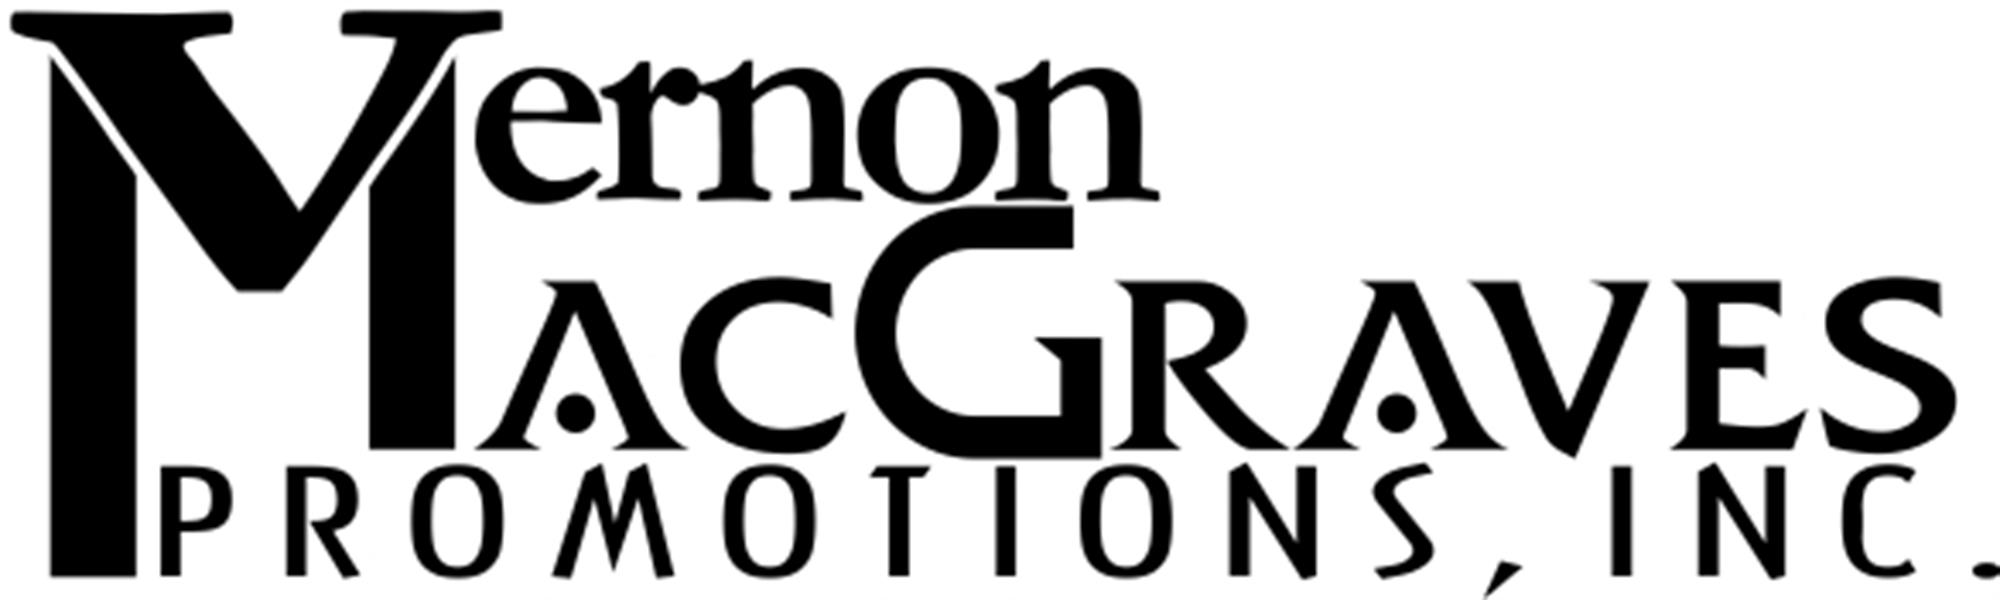 Vernon-MacGraves Promotions Inc